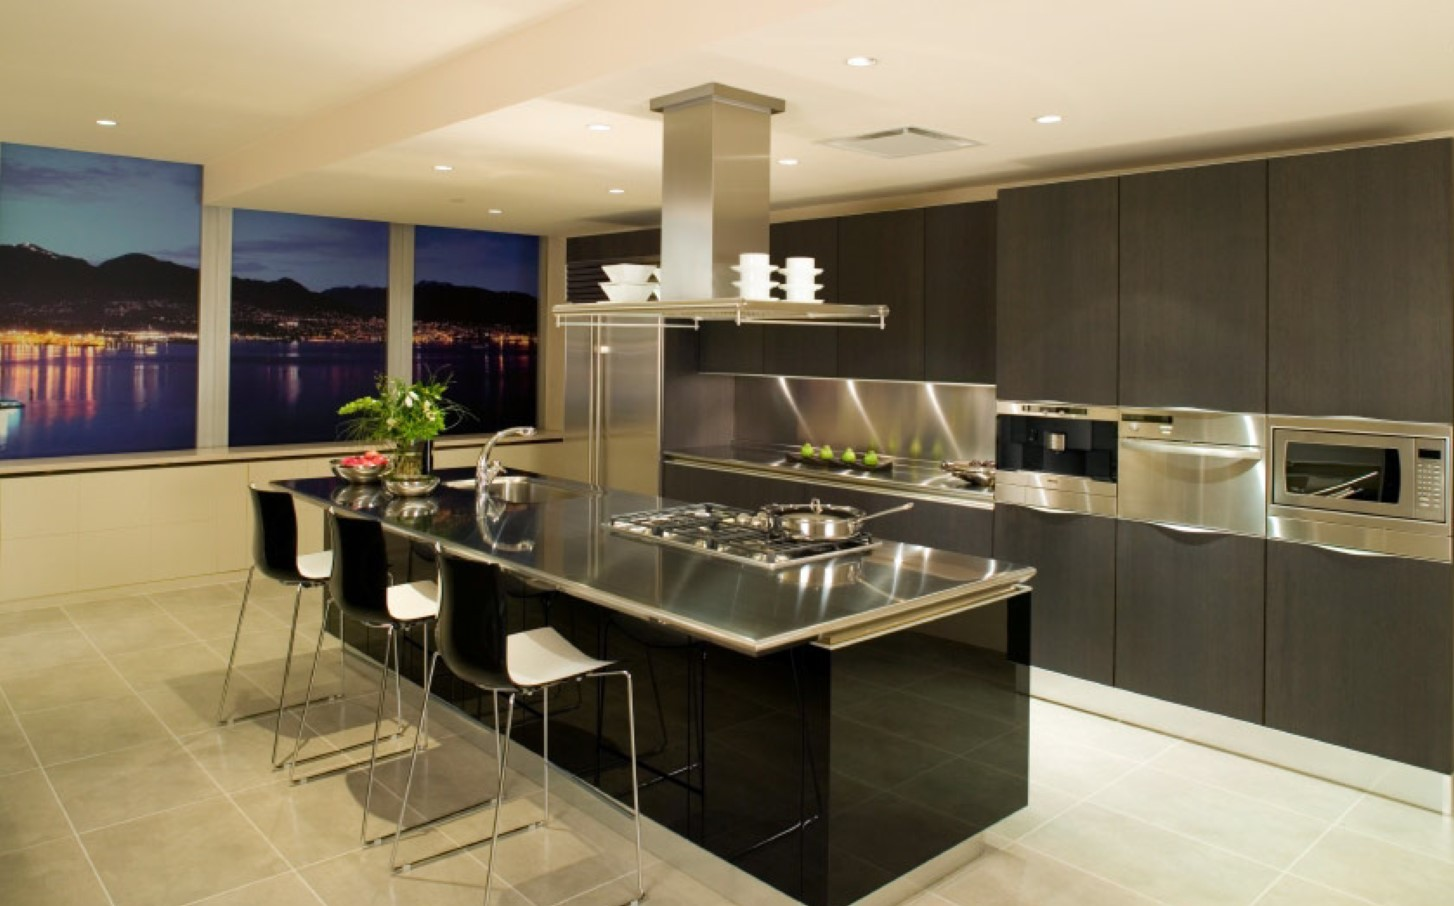 Super Spacious Kitchen Design With Black Home Bar Idea With Black Stools  And Luxurious Kitchne Set